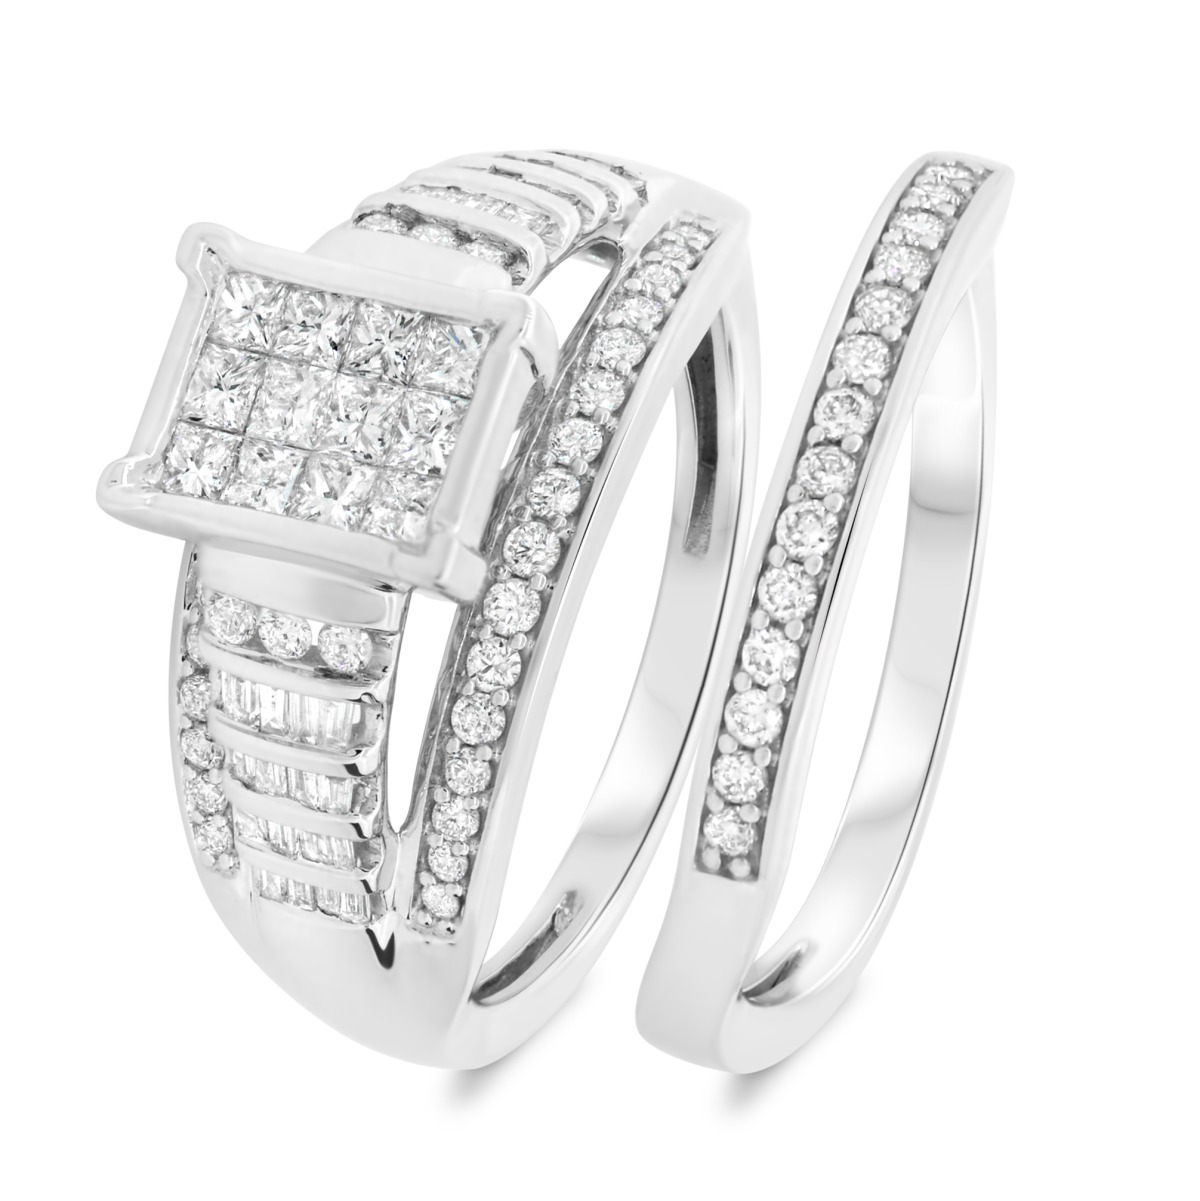 1 1/10 CT. T.W. Diamond Matching Bridal Ring Set 14K White Gold